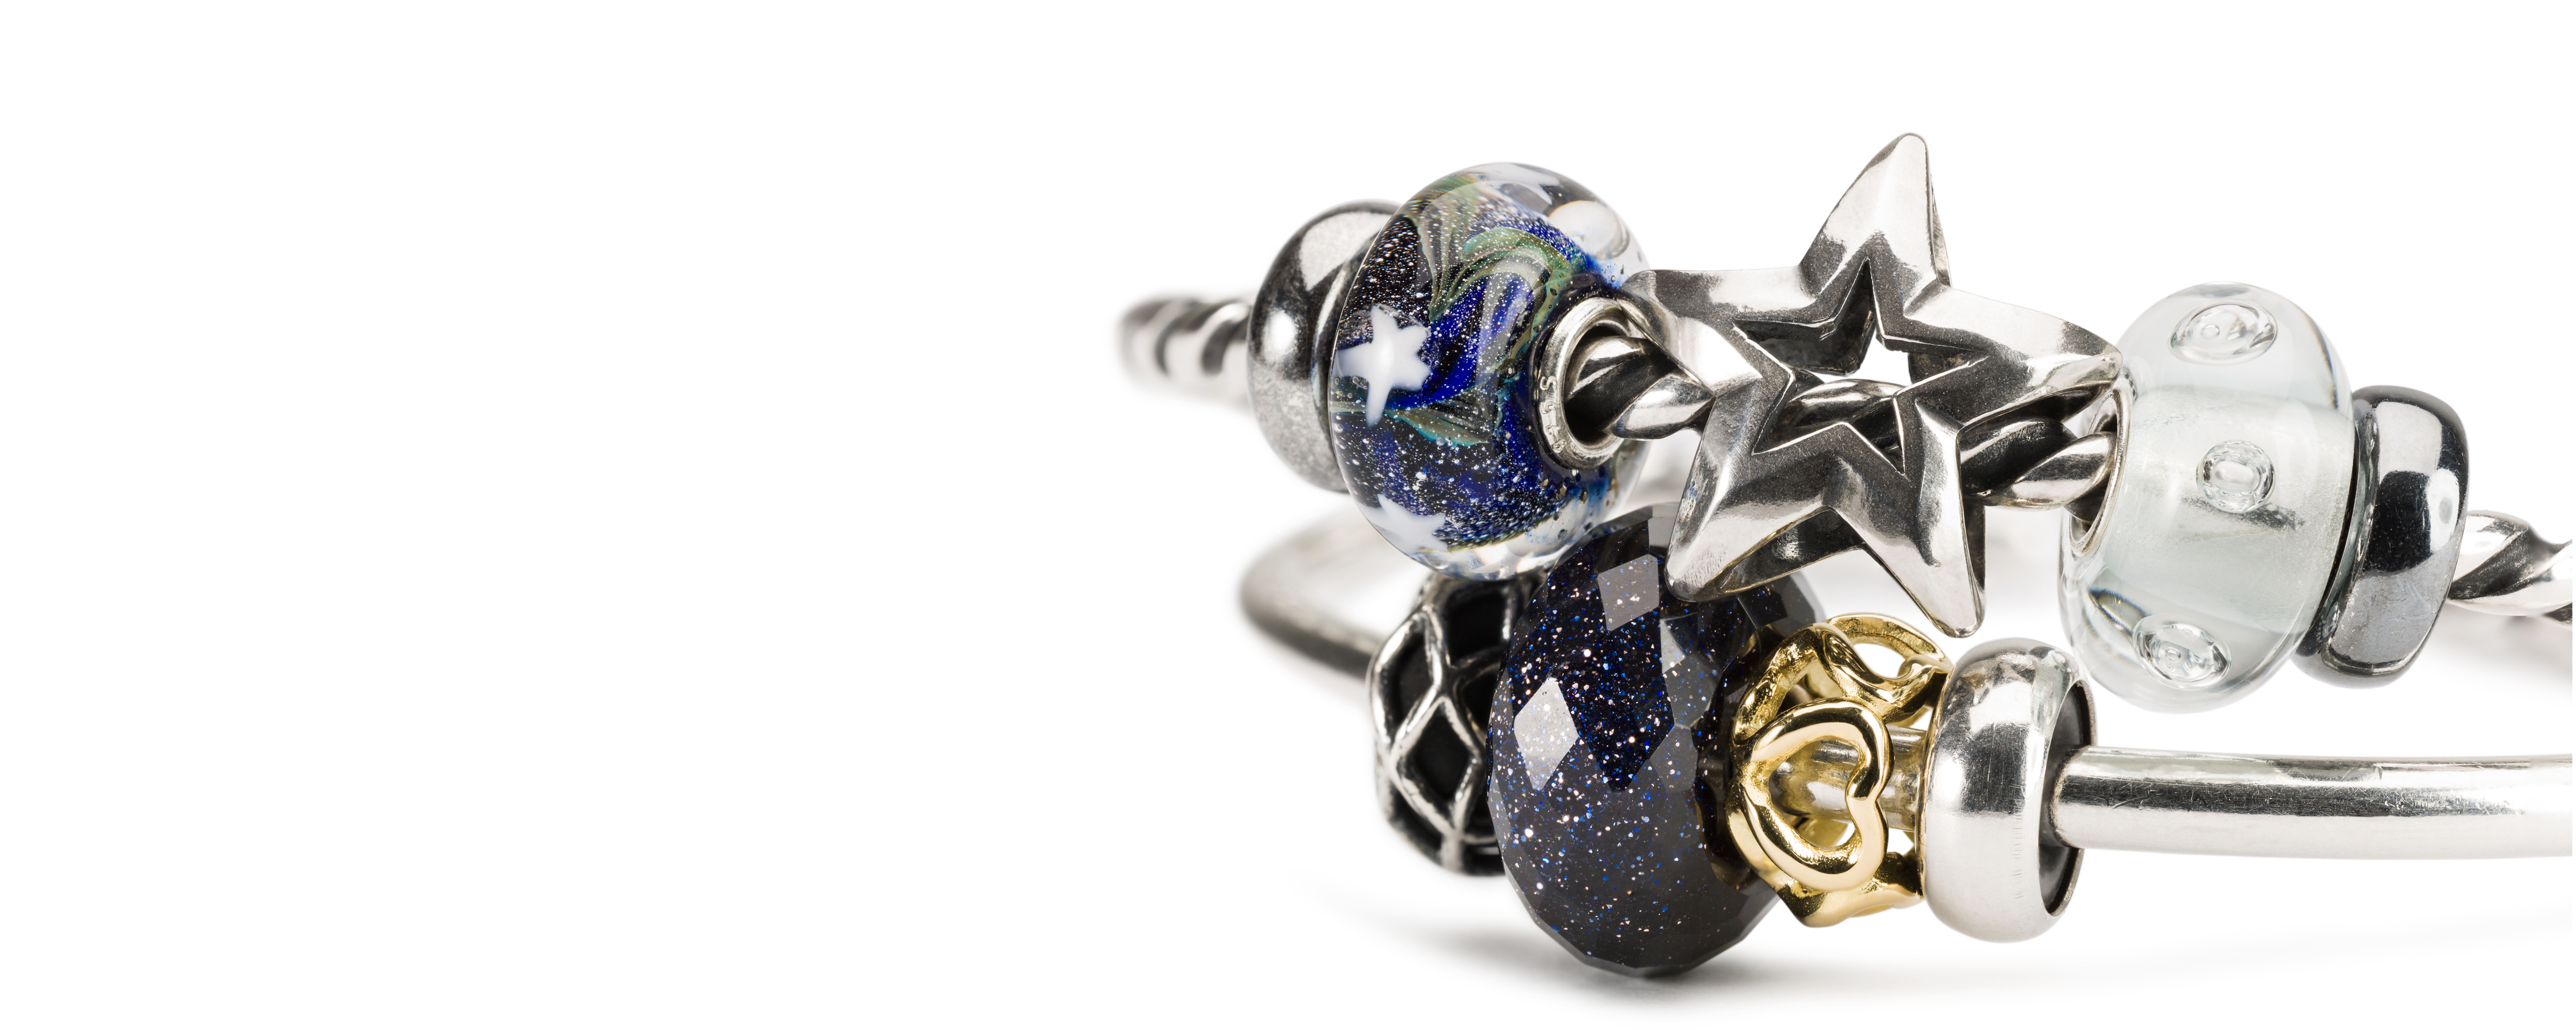 Winter 2020 jewellery collection from Trollbeads